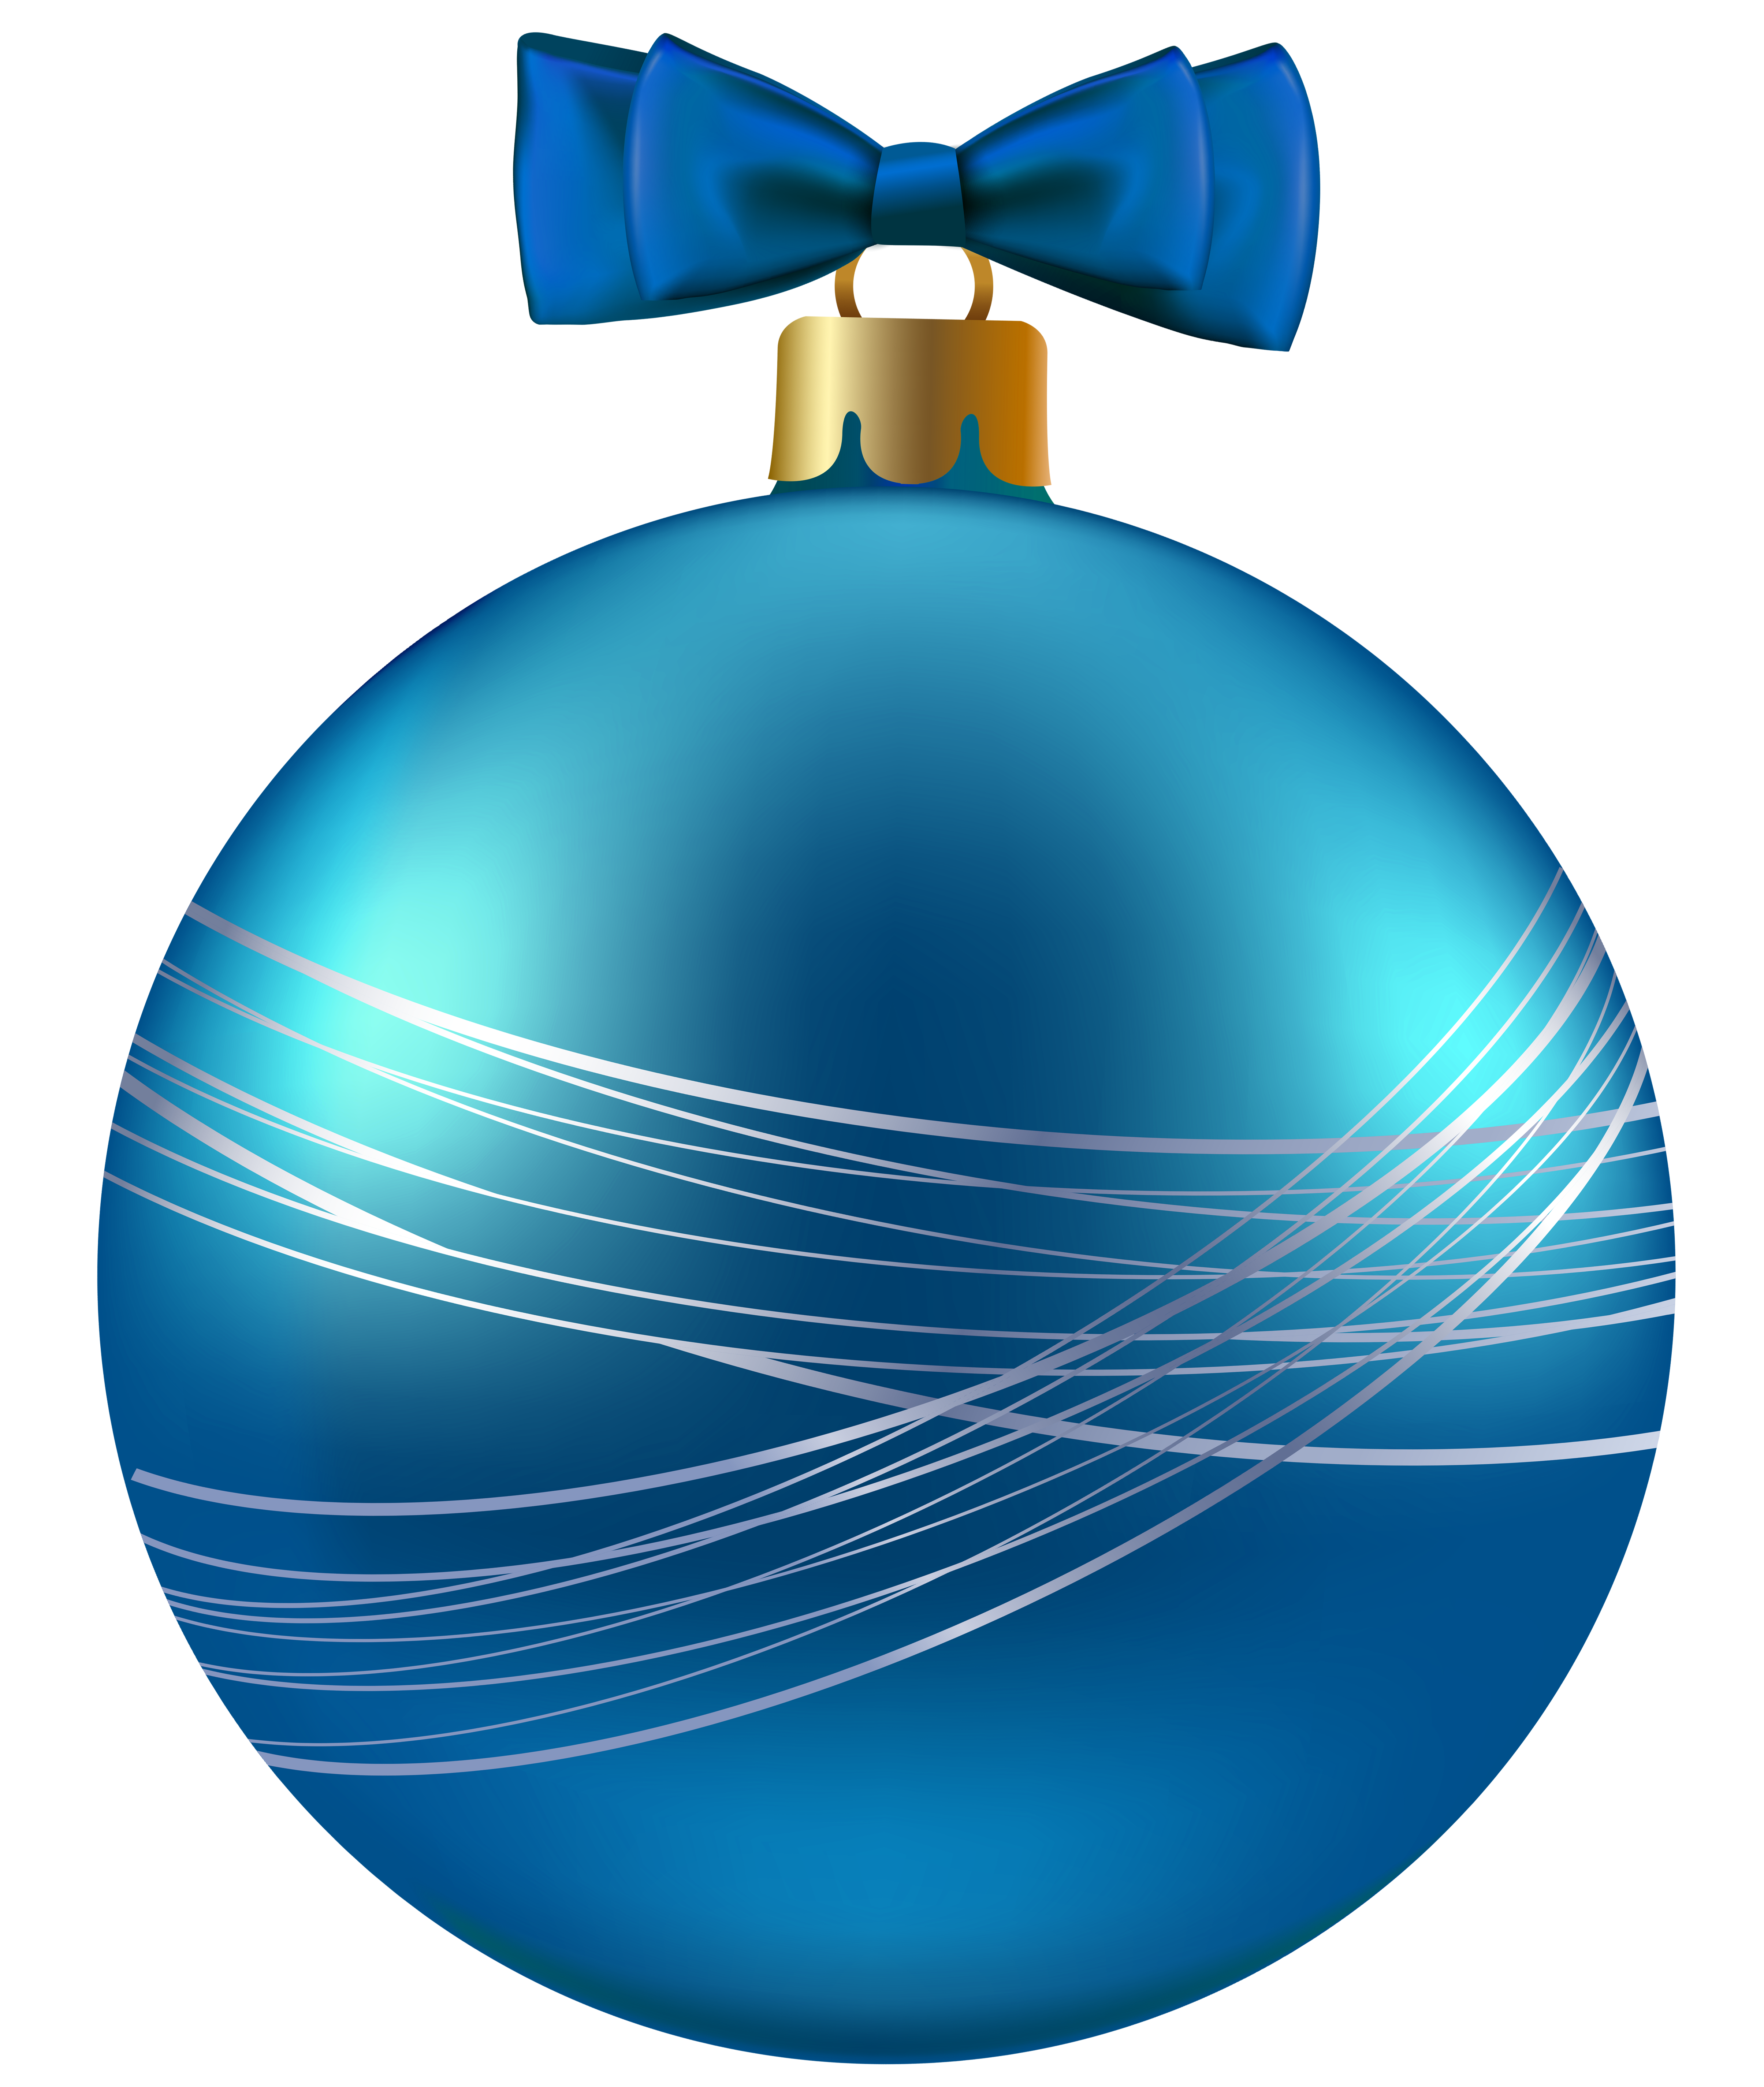 Blue christmas png image. Ornament clipart